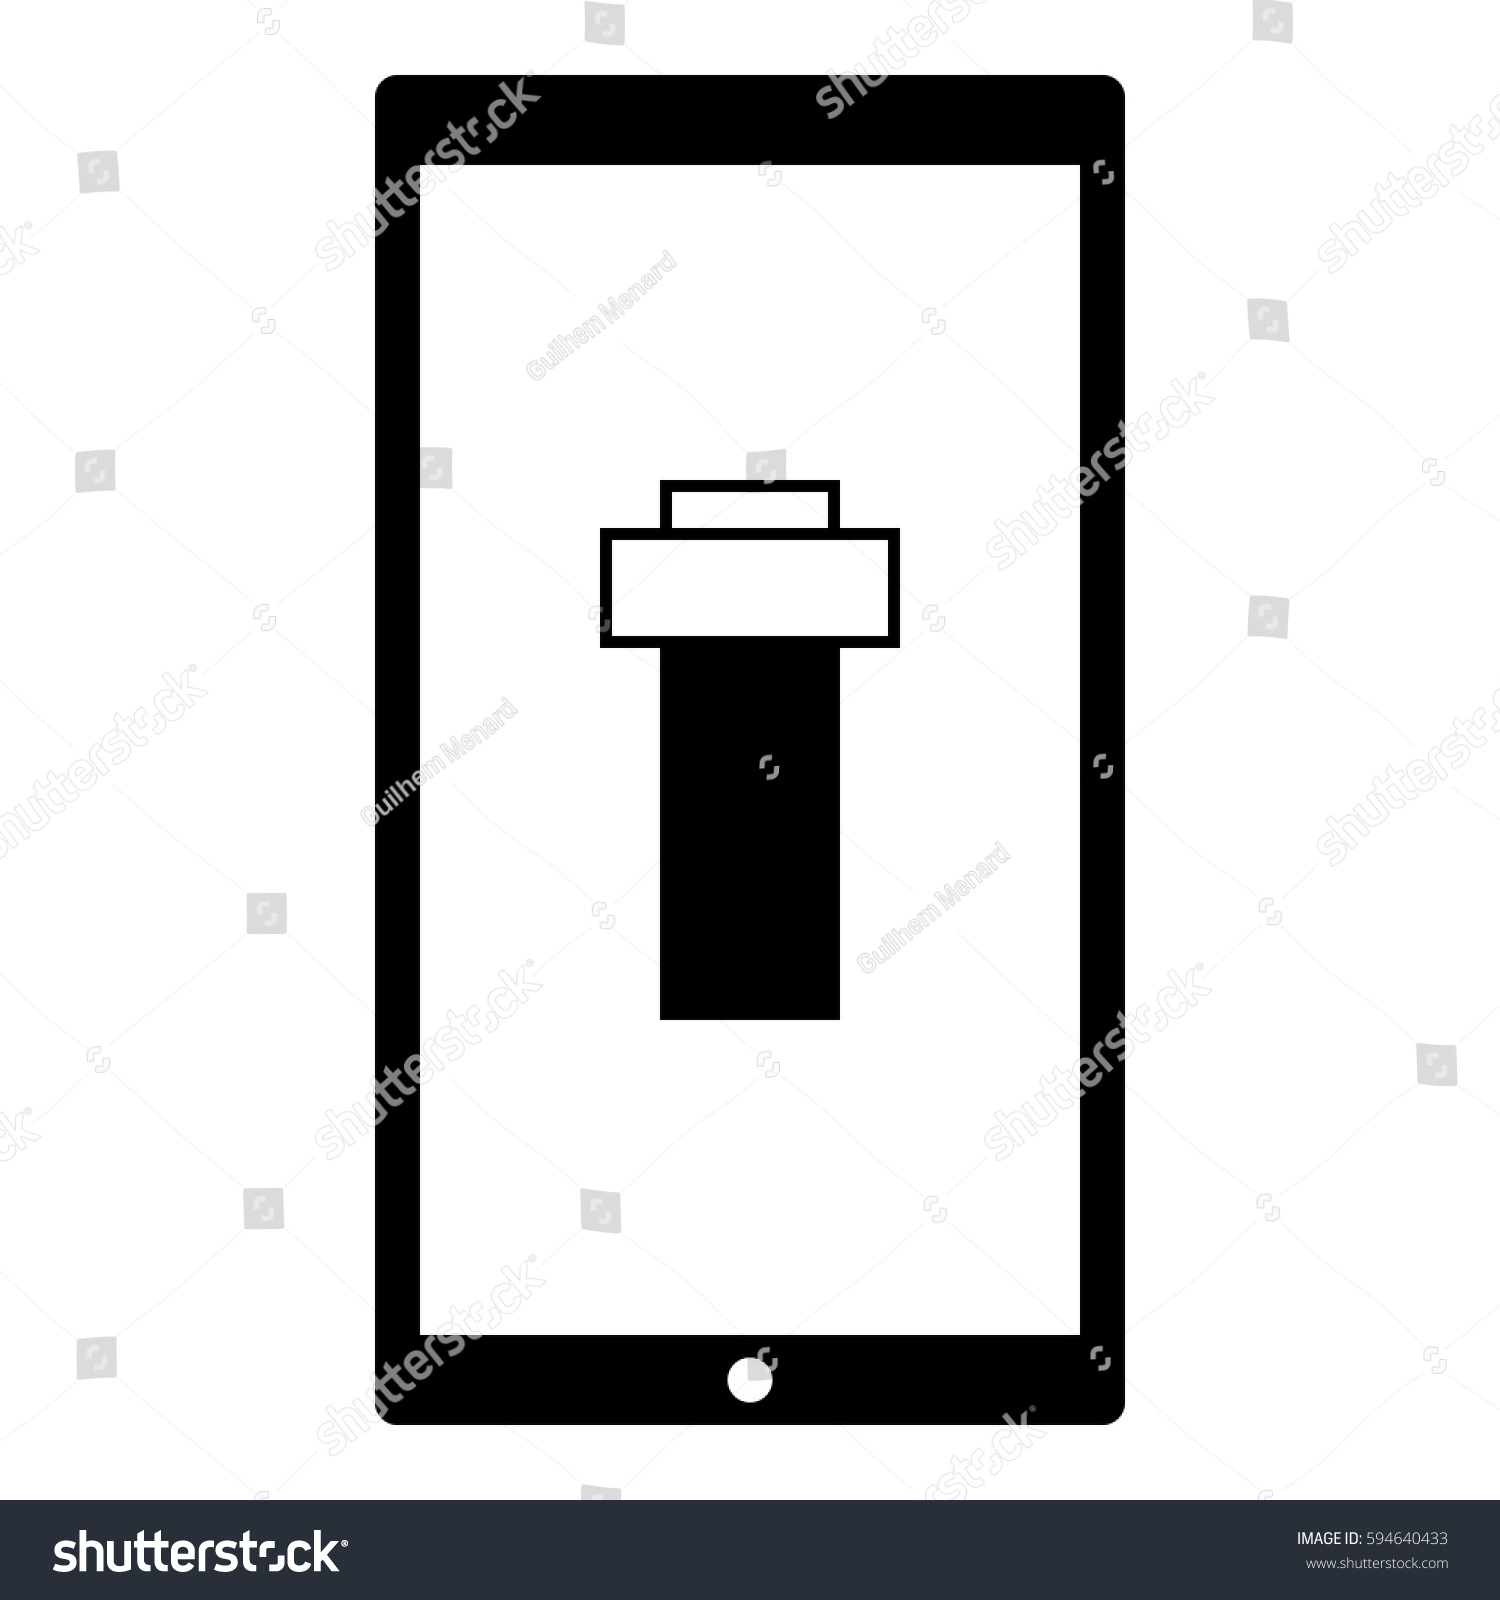 hight resolution of rocker switch wiring diagram icon free download wiring diagram stock vector toggle on off icon flat